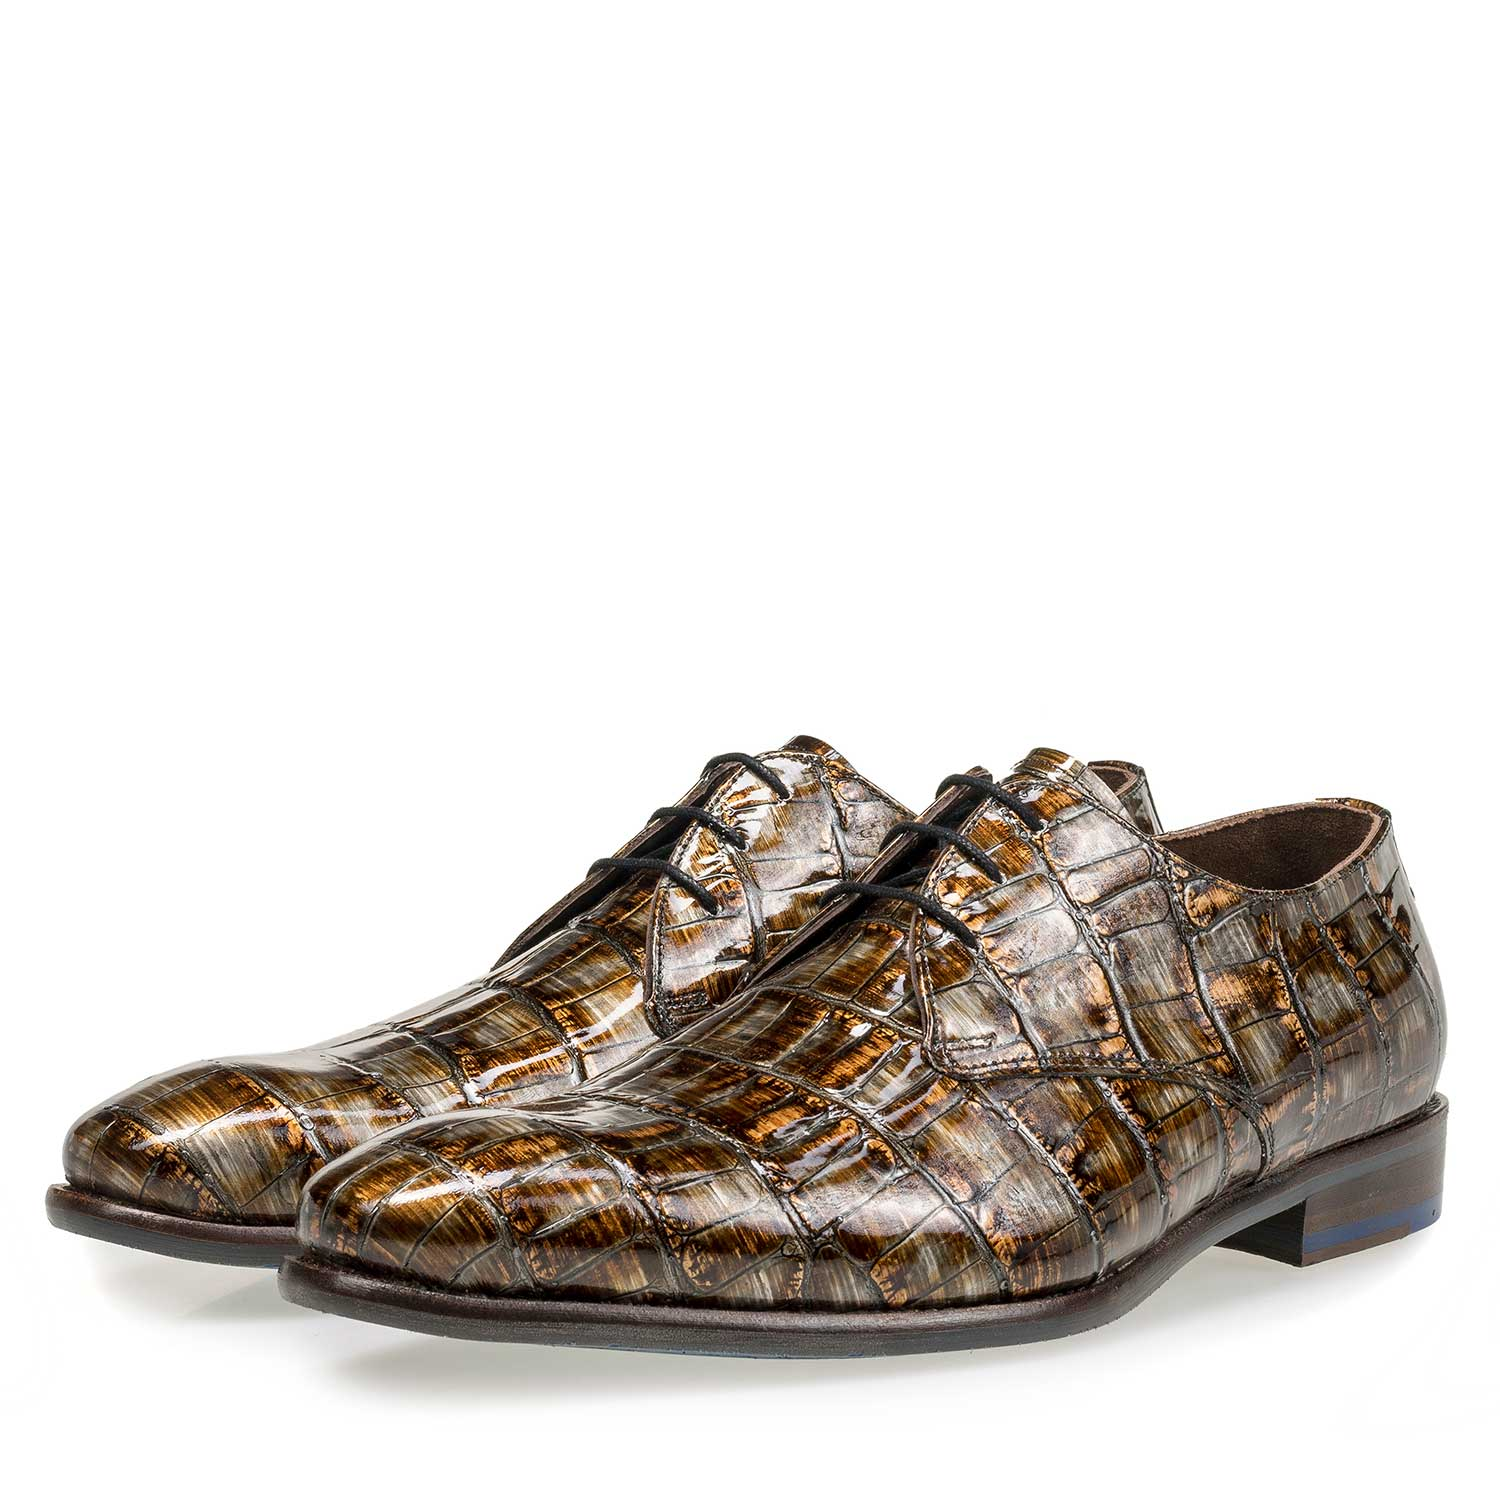 18089/00 - Cognac-coloured lace shoe with a croco print